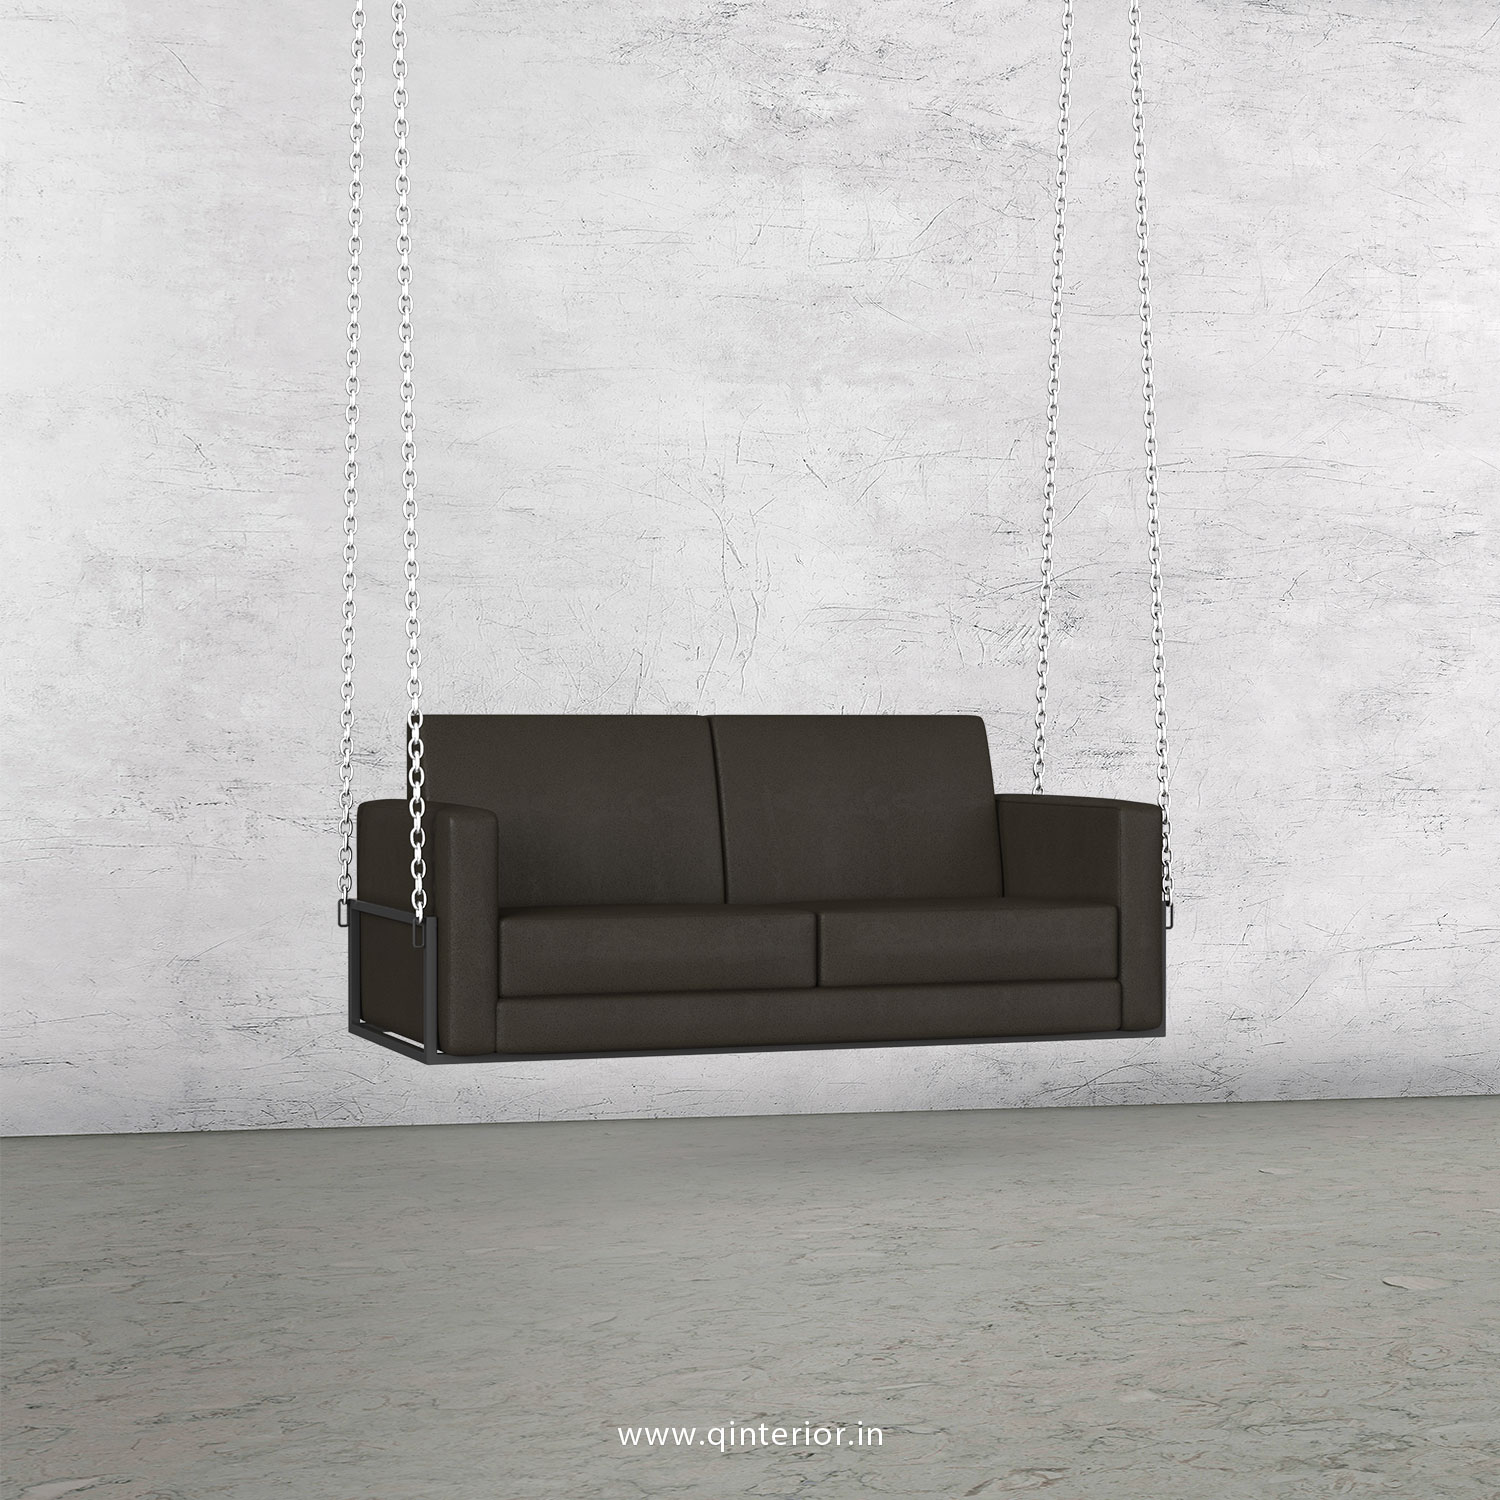 NIRVANA 2 Seater Swing Sofa in Fab Leather Fabric - SSF001 FL16